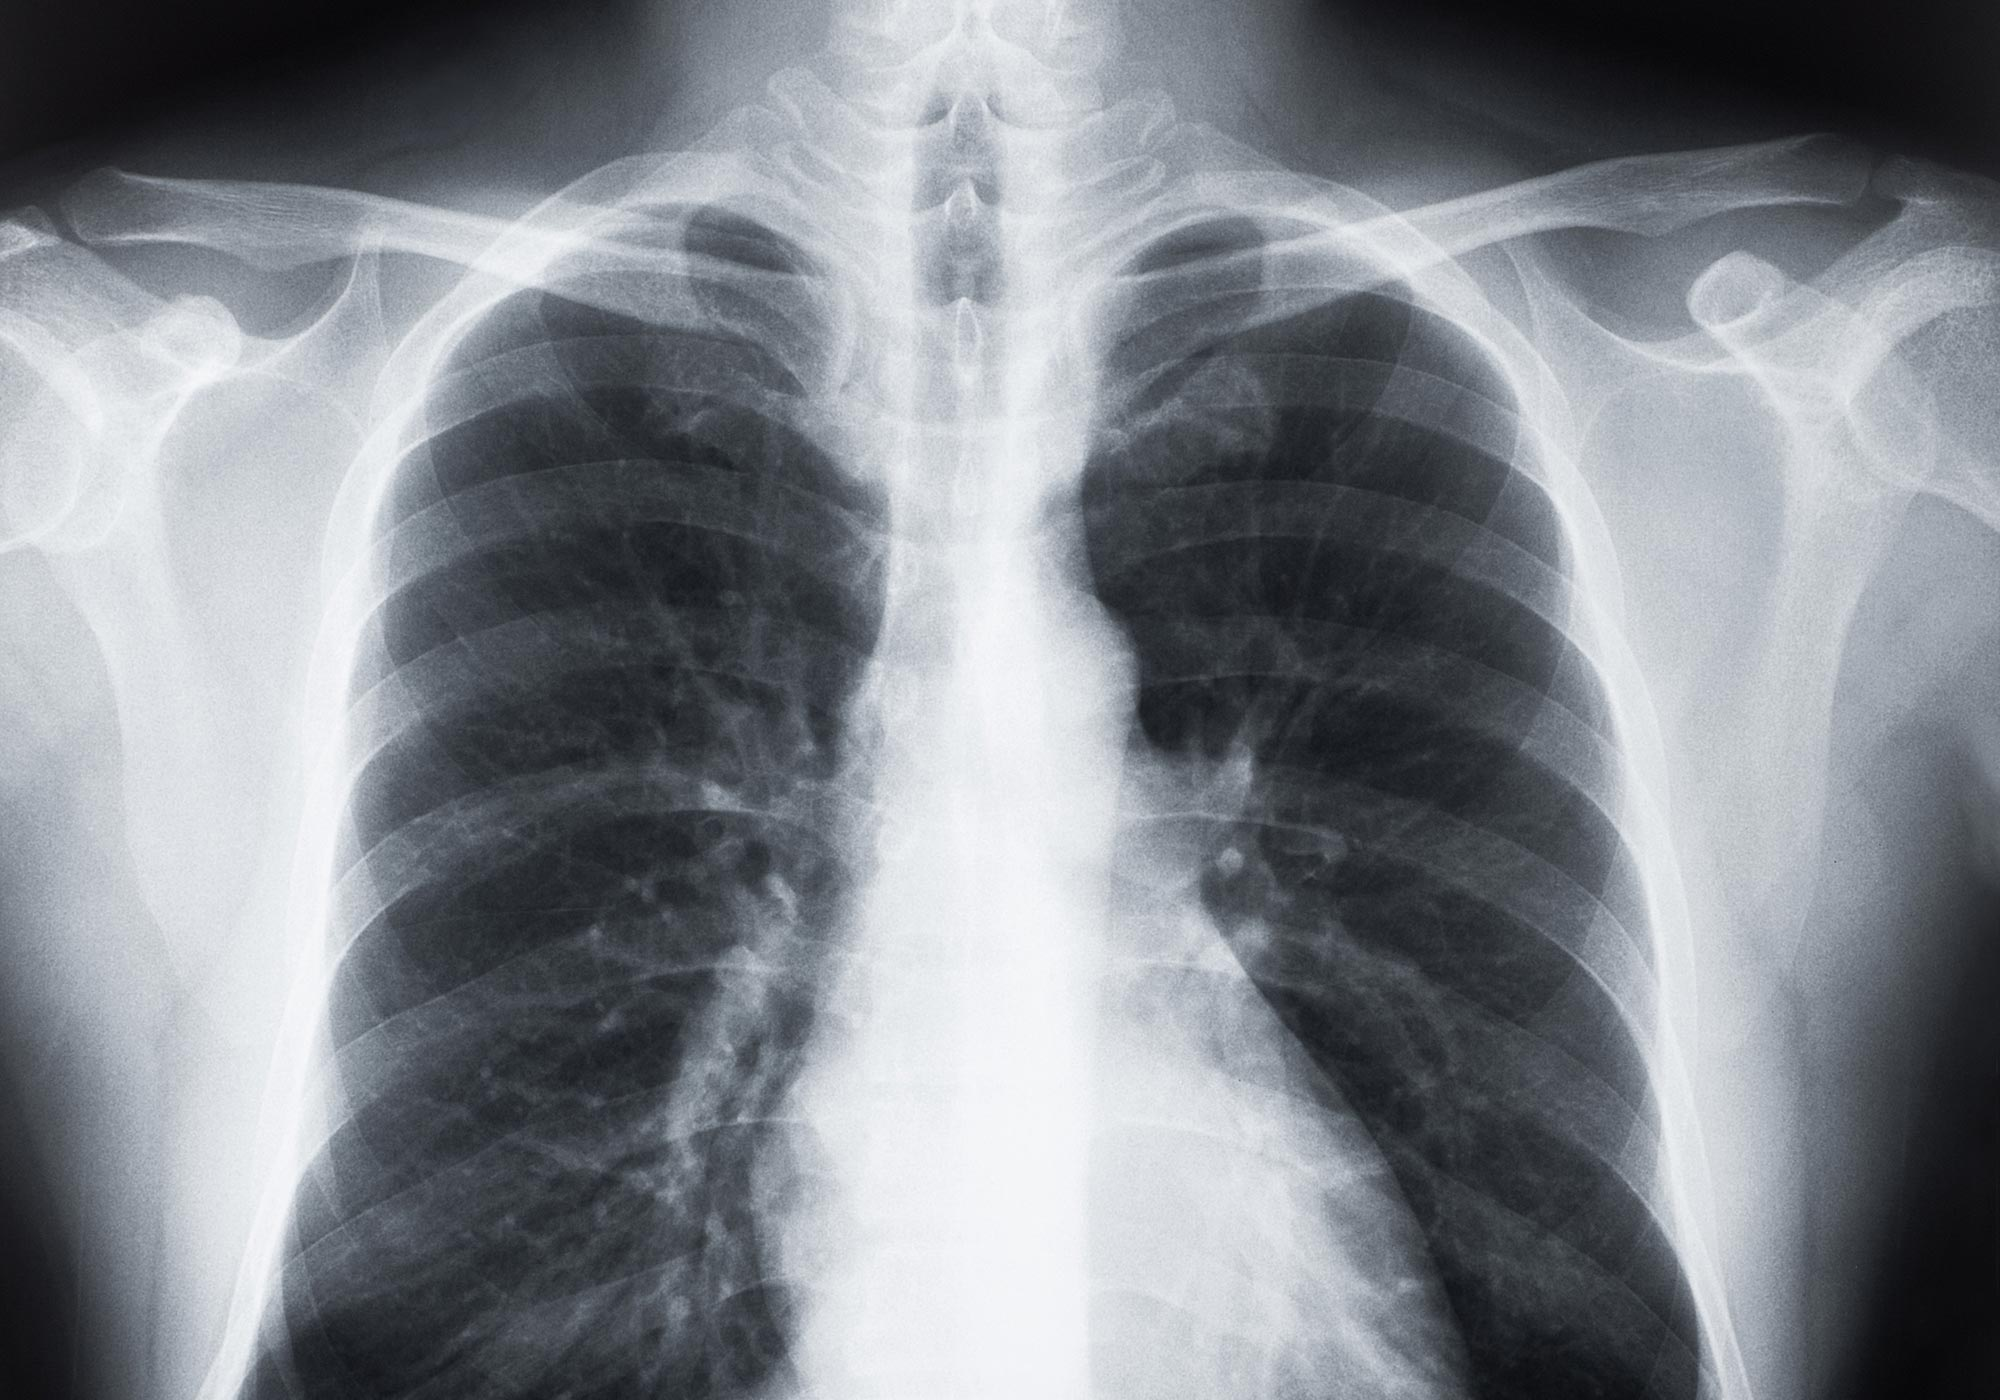 E-Cigarette User Found to Have Rare Form of Lung Scarring Typically Found in Metal Workers